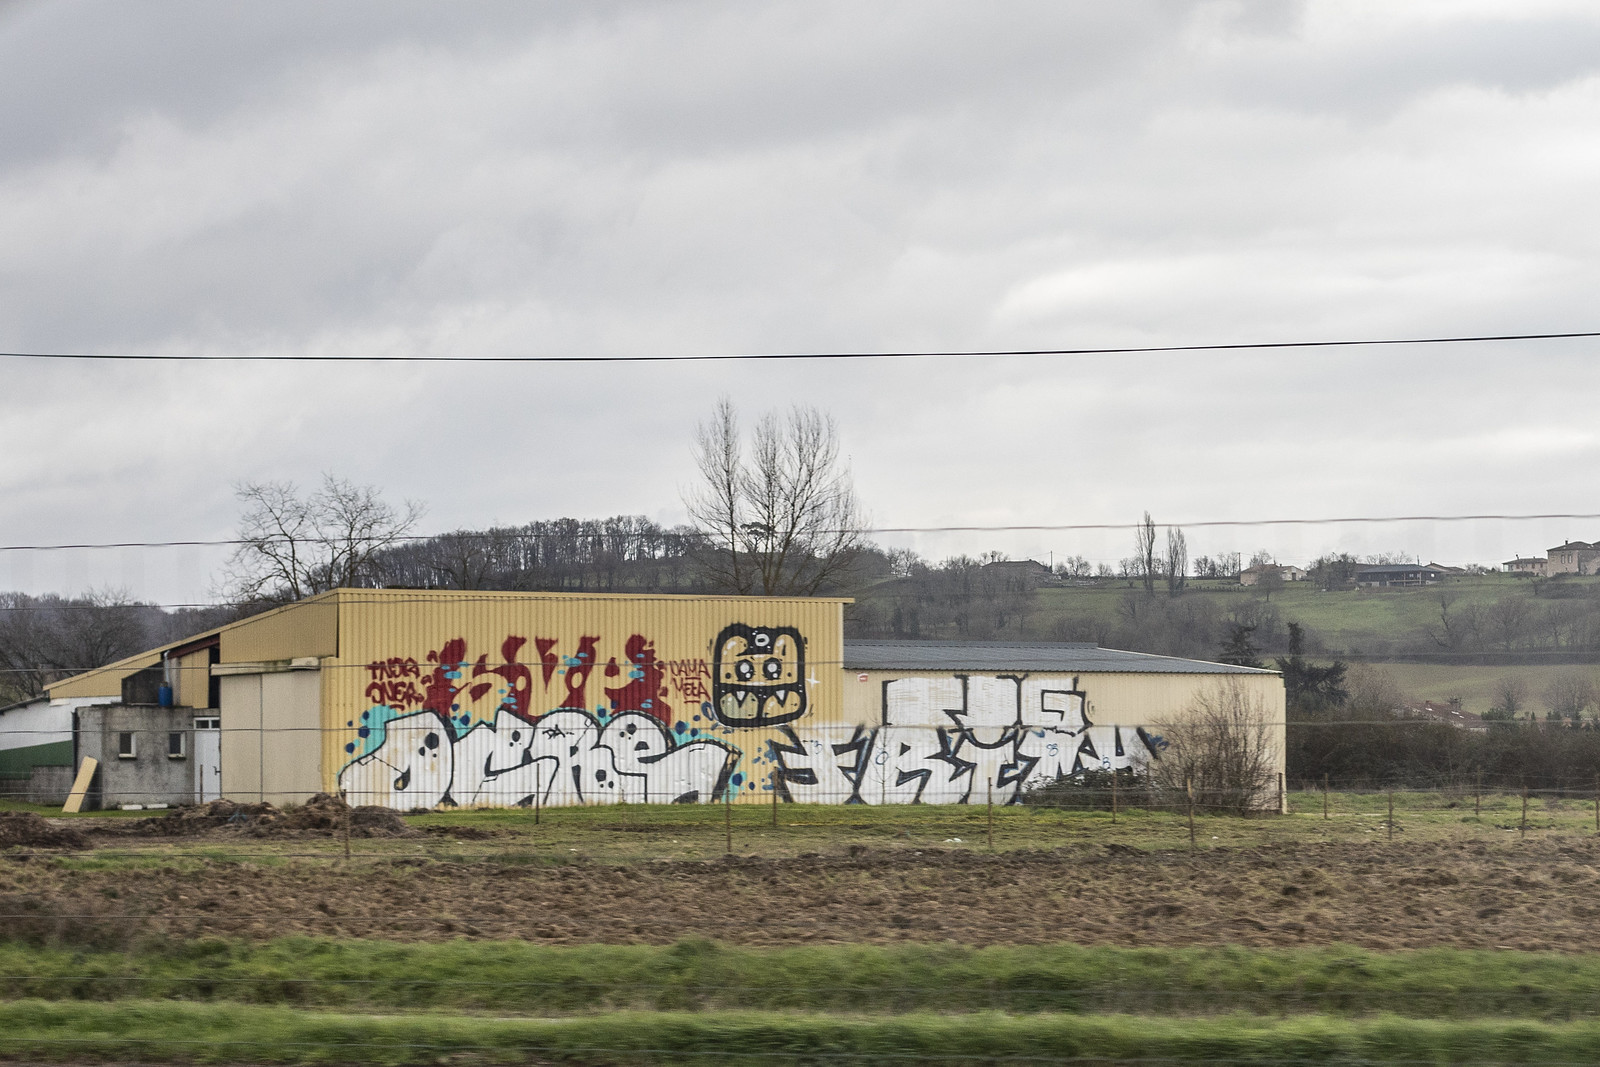 ocre, el mootmoot, frich, PDG, graffiti, toulouse